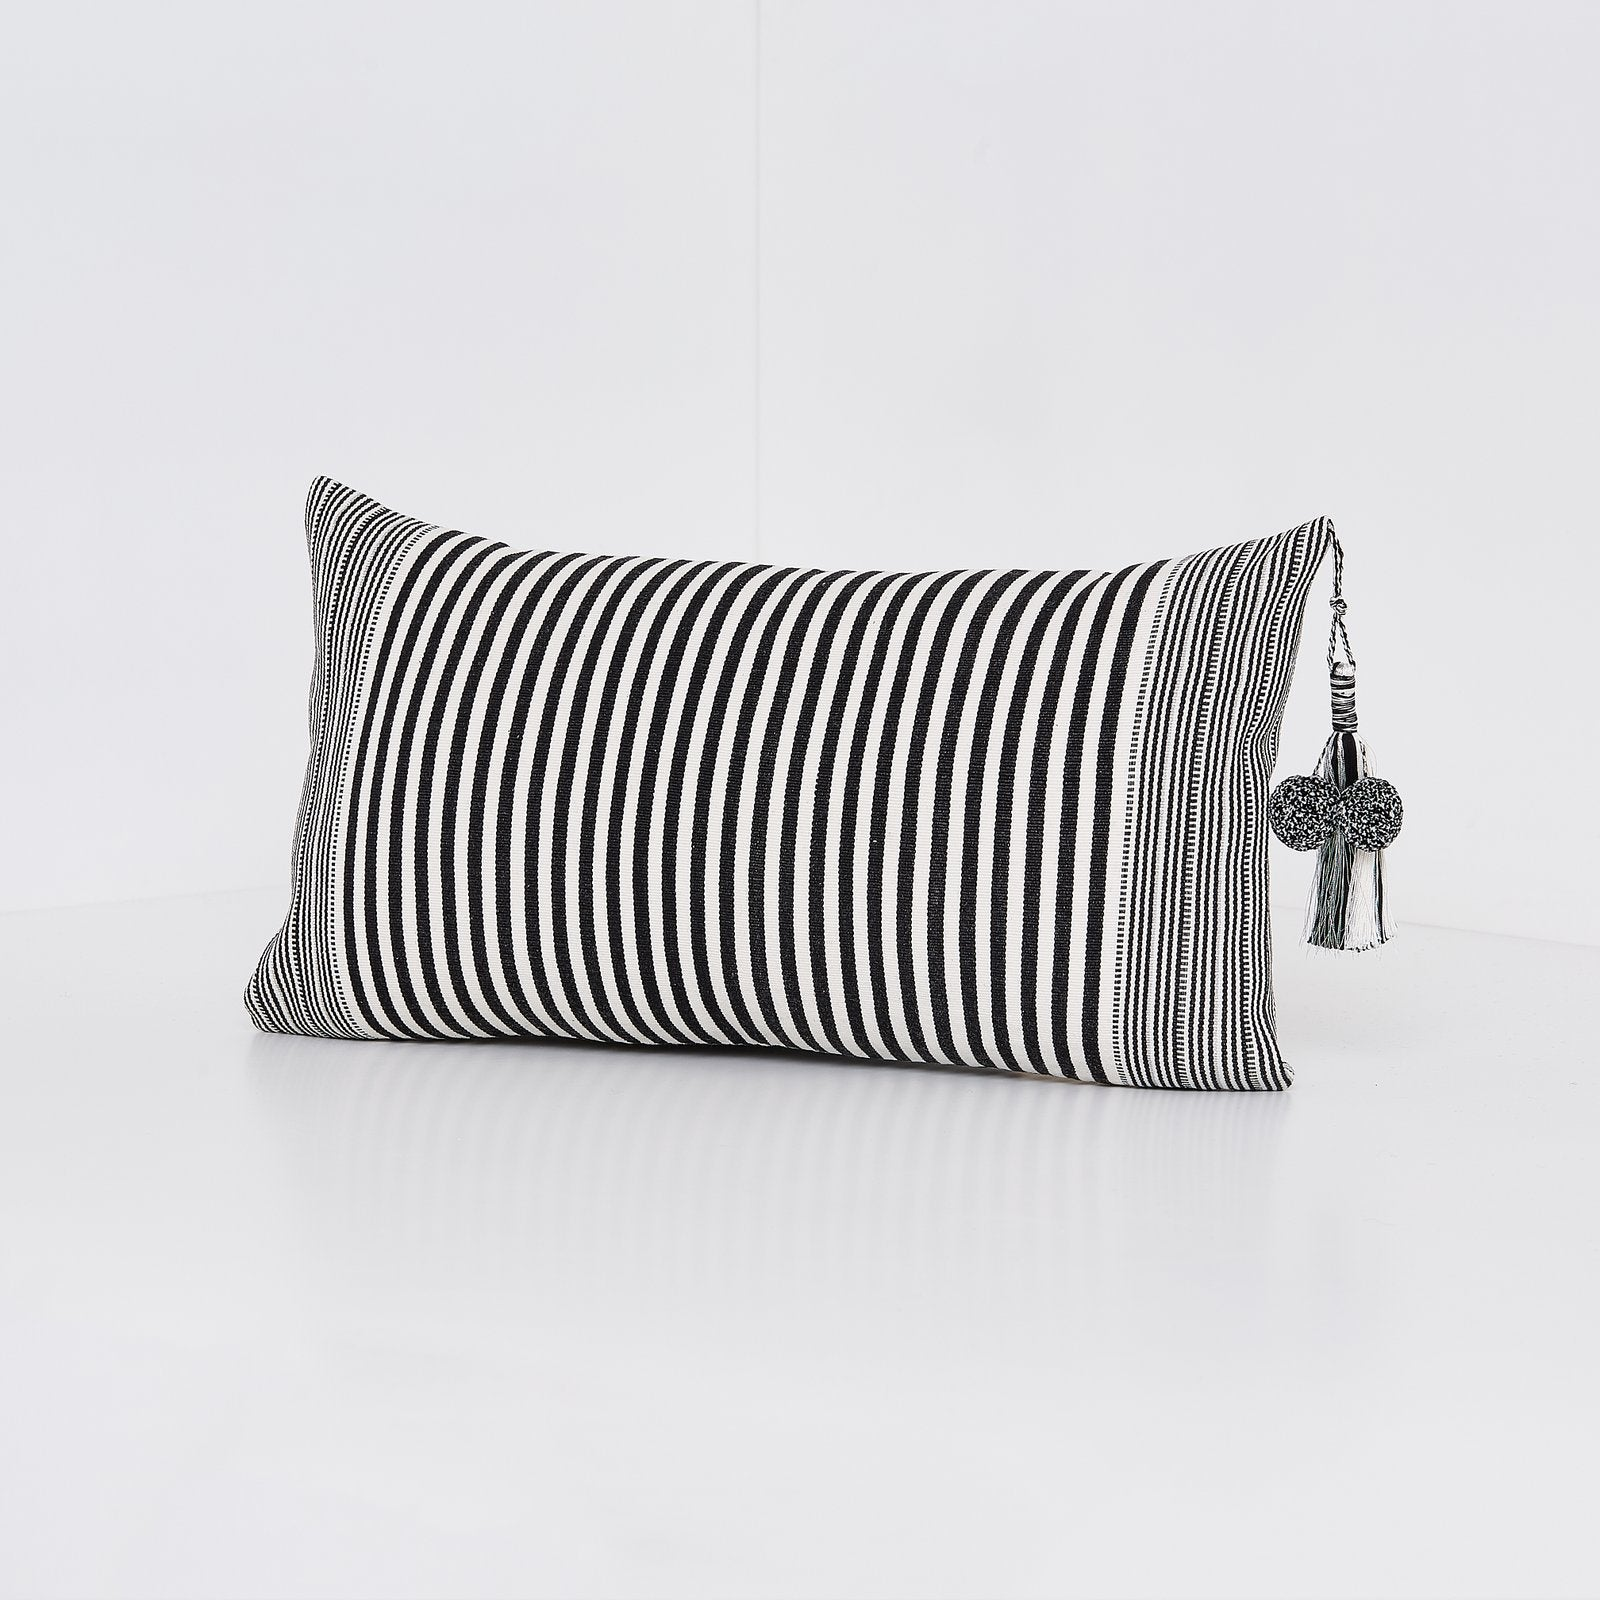 Handwoven cotton pillow with tassels black and white B&W silver